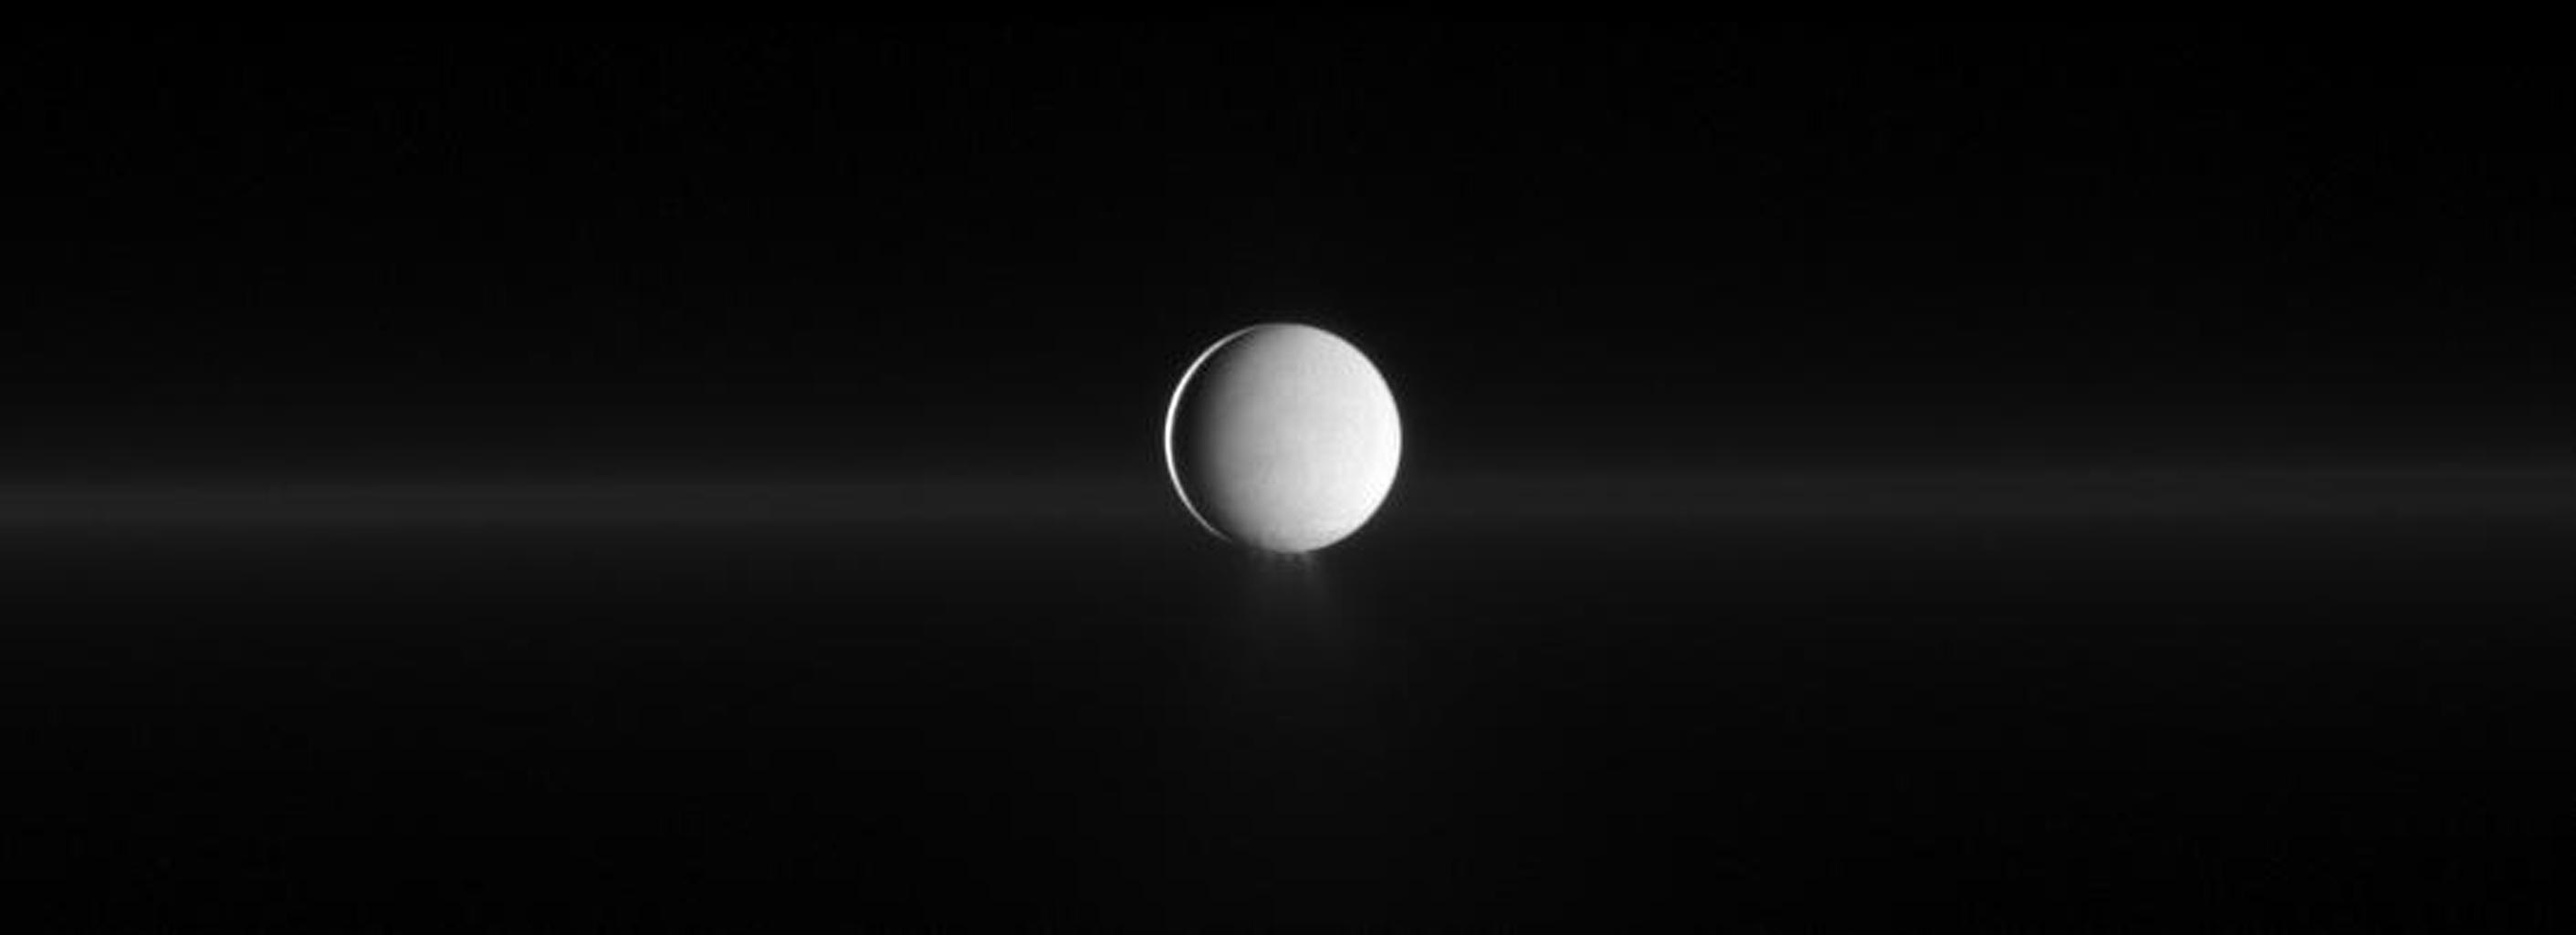 As Enceladus spews water ice from its south polar region, NASA's Cassini also shows Saturn's faint G ring before the moon.